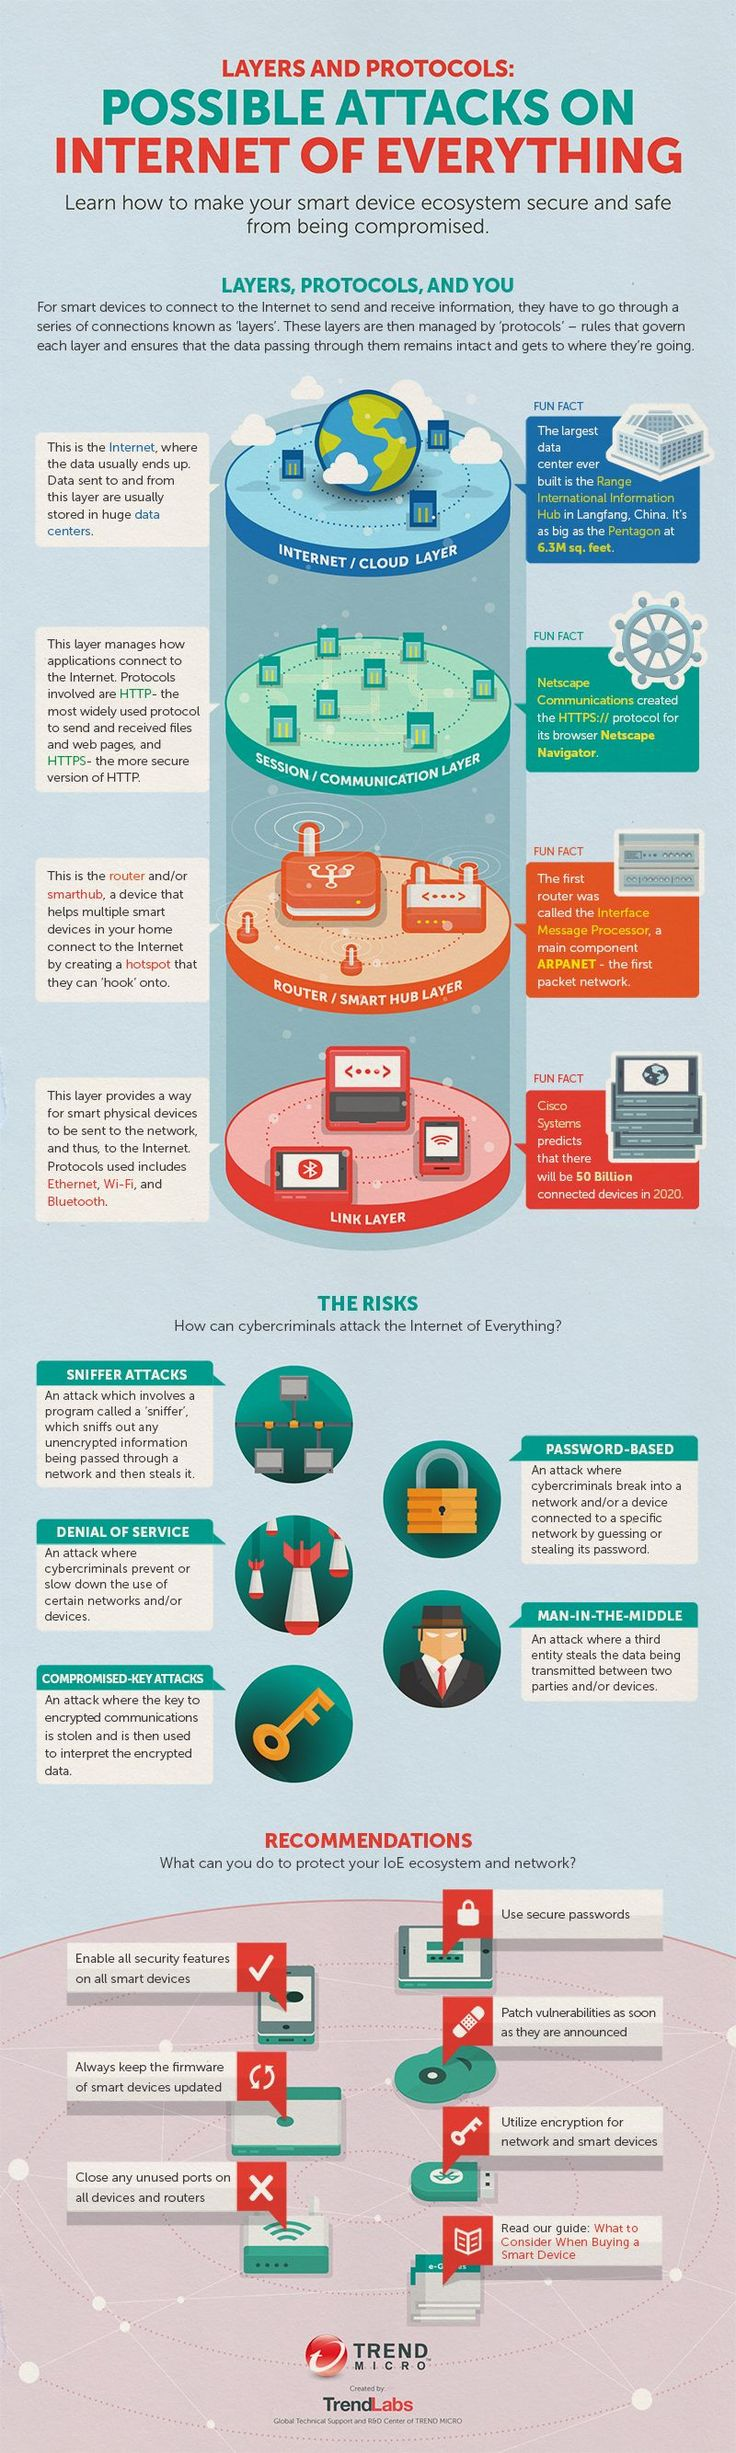 Layers and Protocols: Possible Attacks on The Internet of Everything #infographic #Technology #Internet